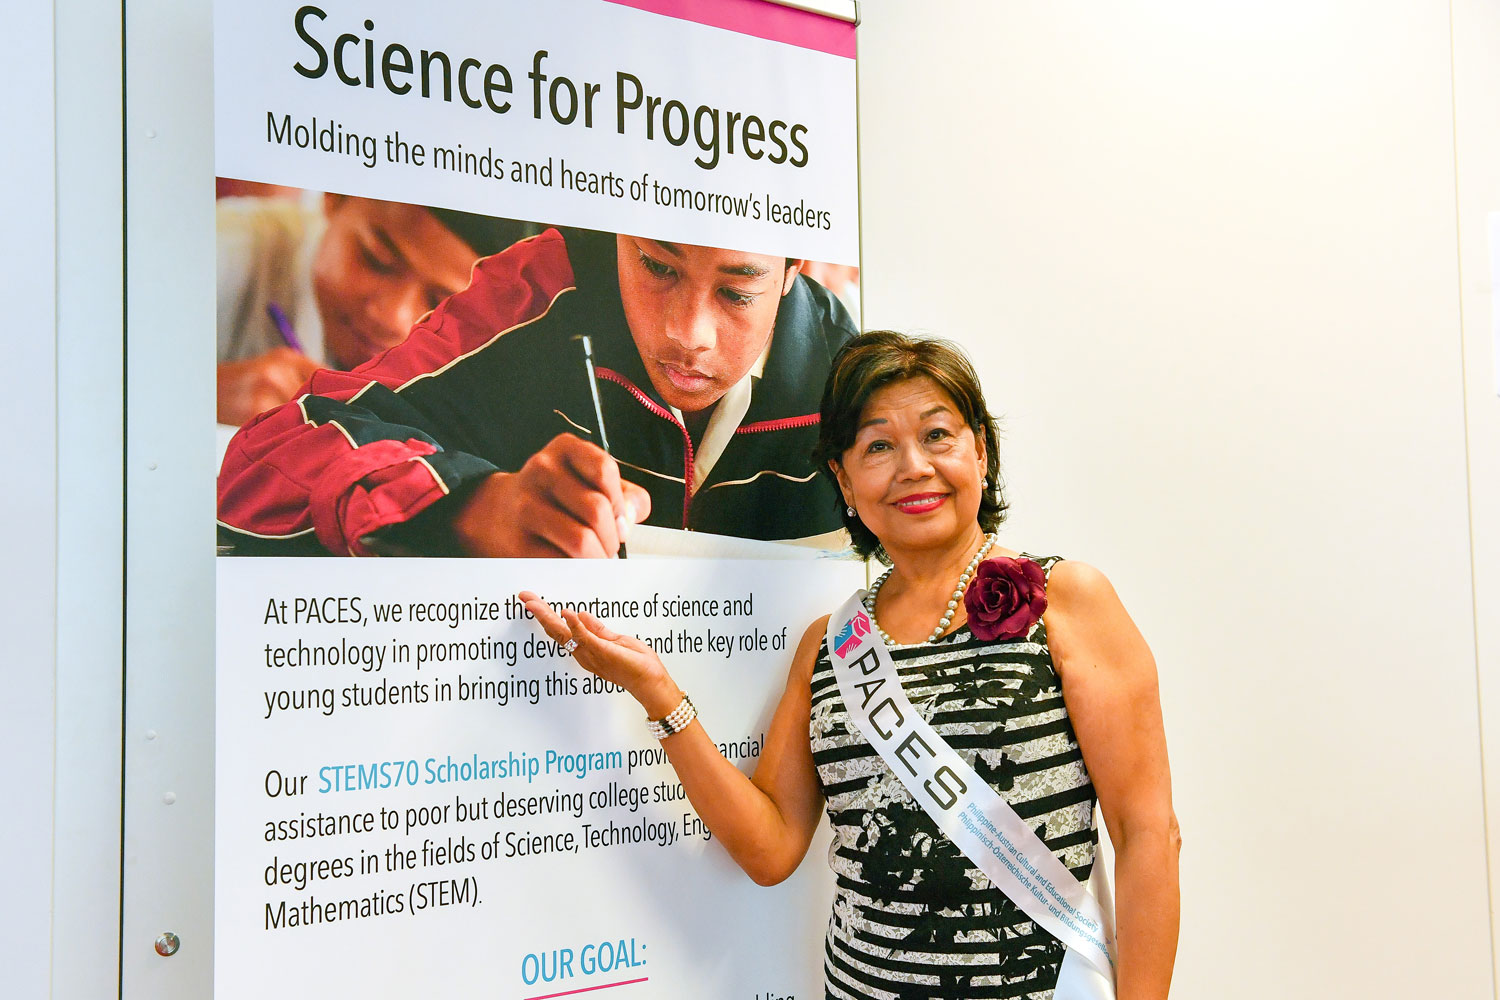 Malou Reininger heads PACES, which aims to support STEM graduates in the Philippines.